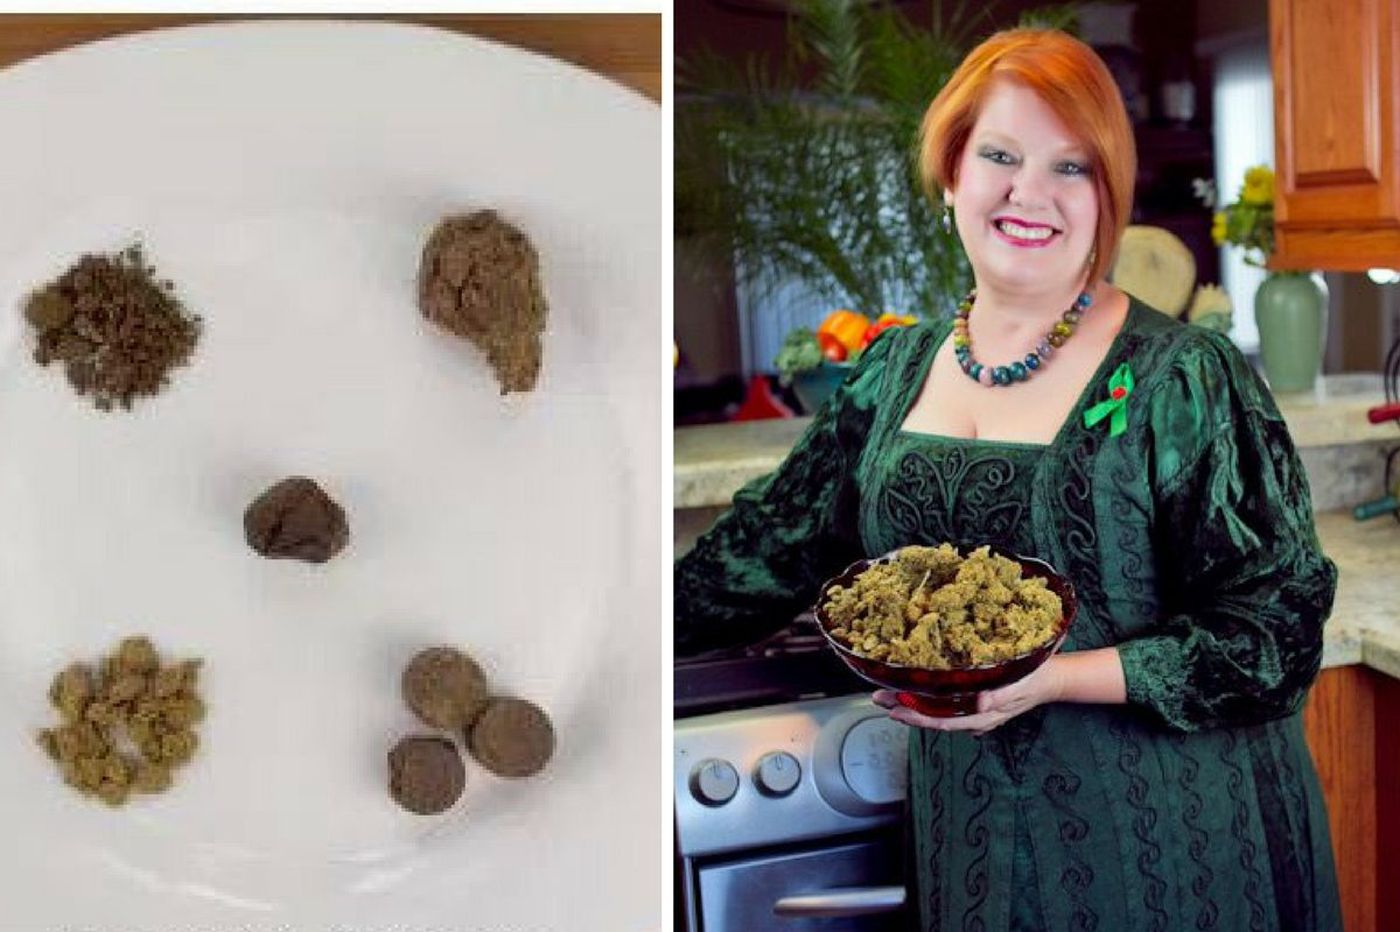 Cooking with cannabis: 3 questions with a professional cannabis chef | Philly420